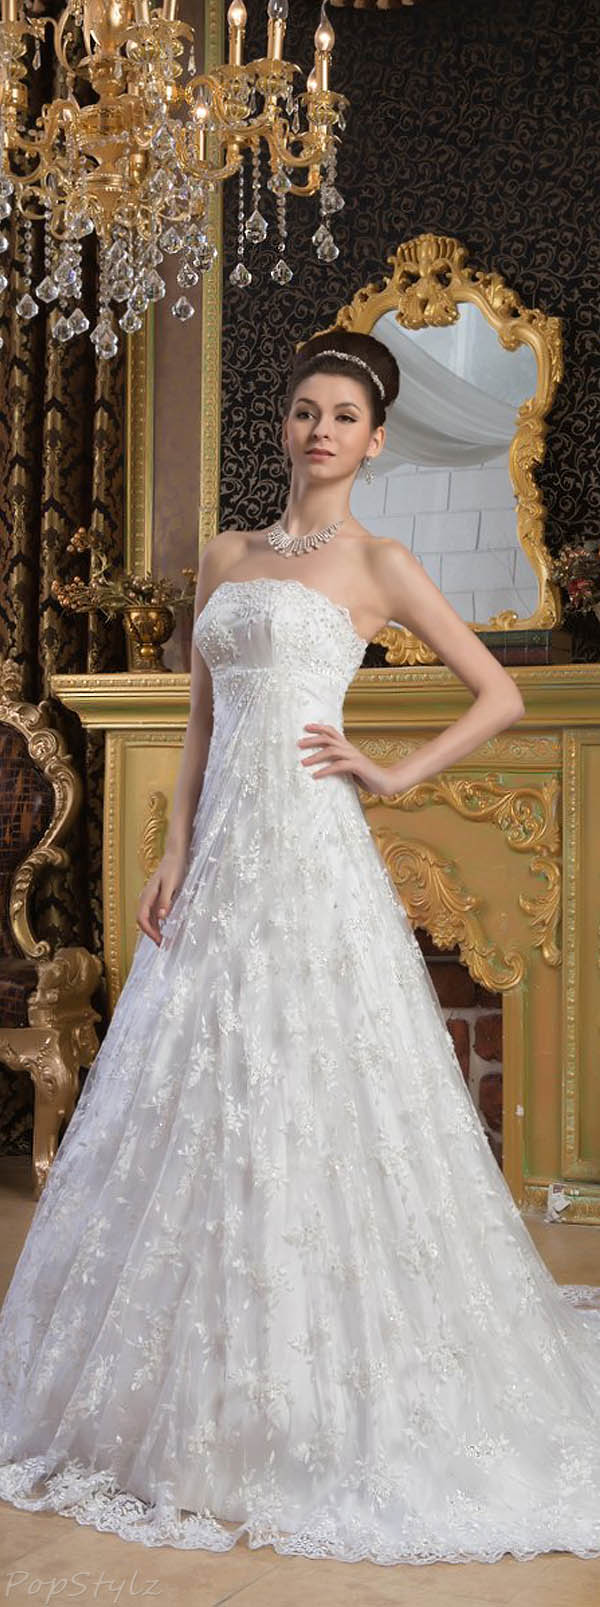 Topwedding Strapless Empire Lace Wedding Dress with Court Train